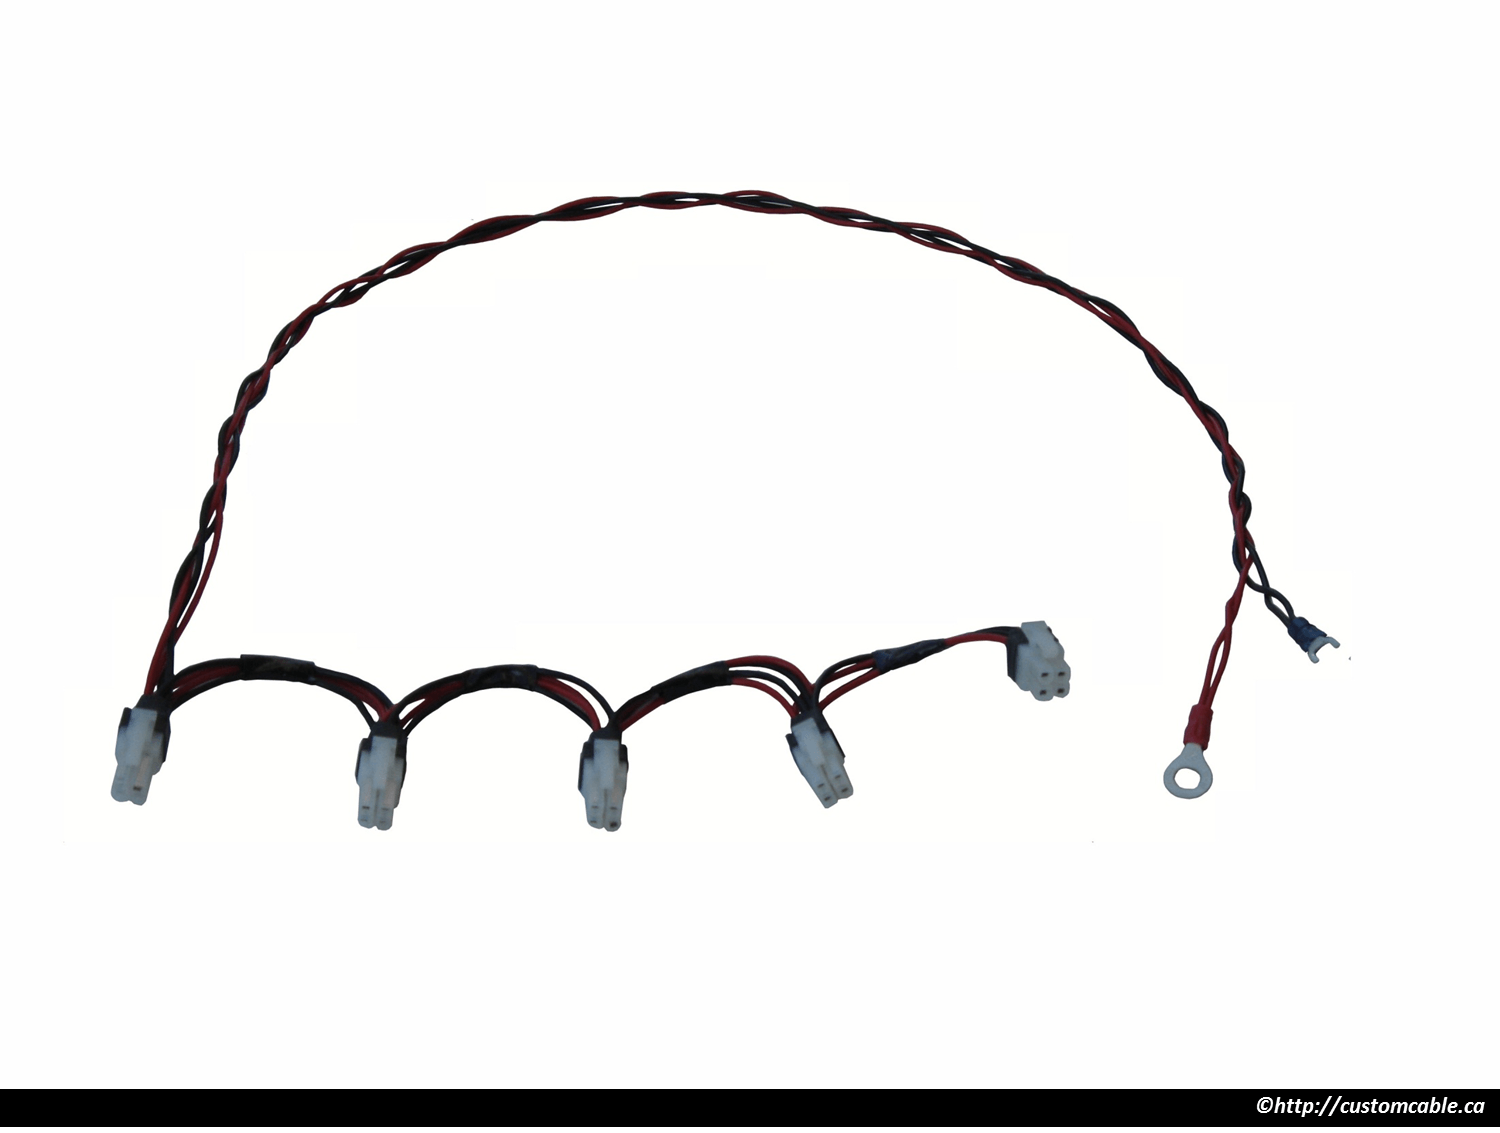 Custom Wiring Harness Customcable Wire Terminals Low Profile Connector Cable Assemblies With Fly Wires